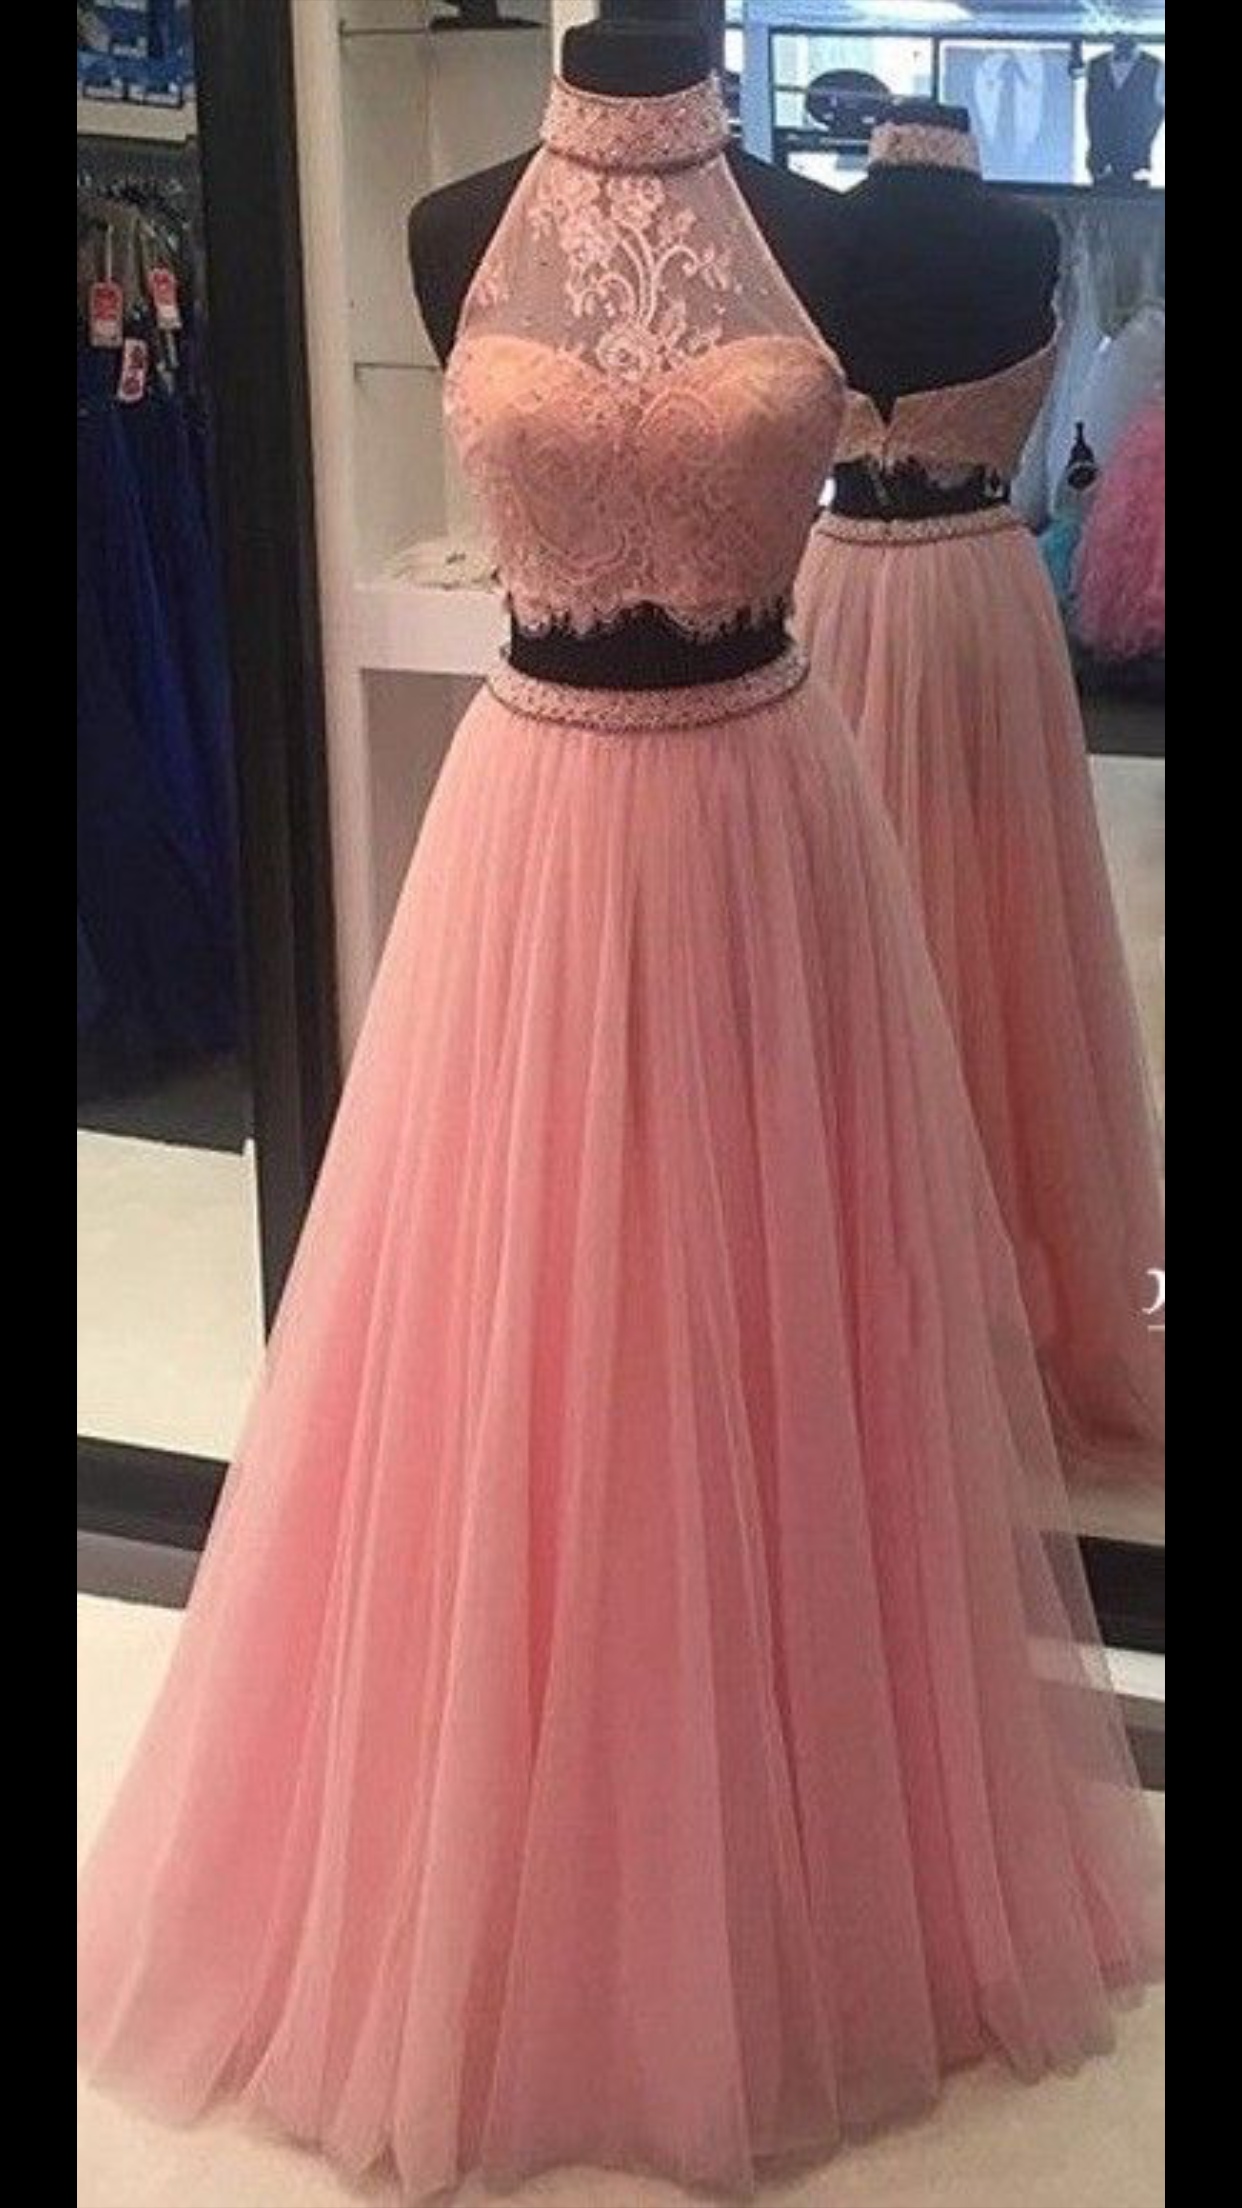 High Quality High Neck Pink Two Pieces Long Prom Dresses Custom Made Lace  Tulle Evening Gowns dresses could be custom made 811a74fb4ed4